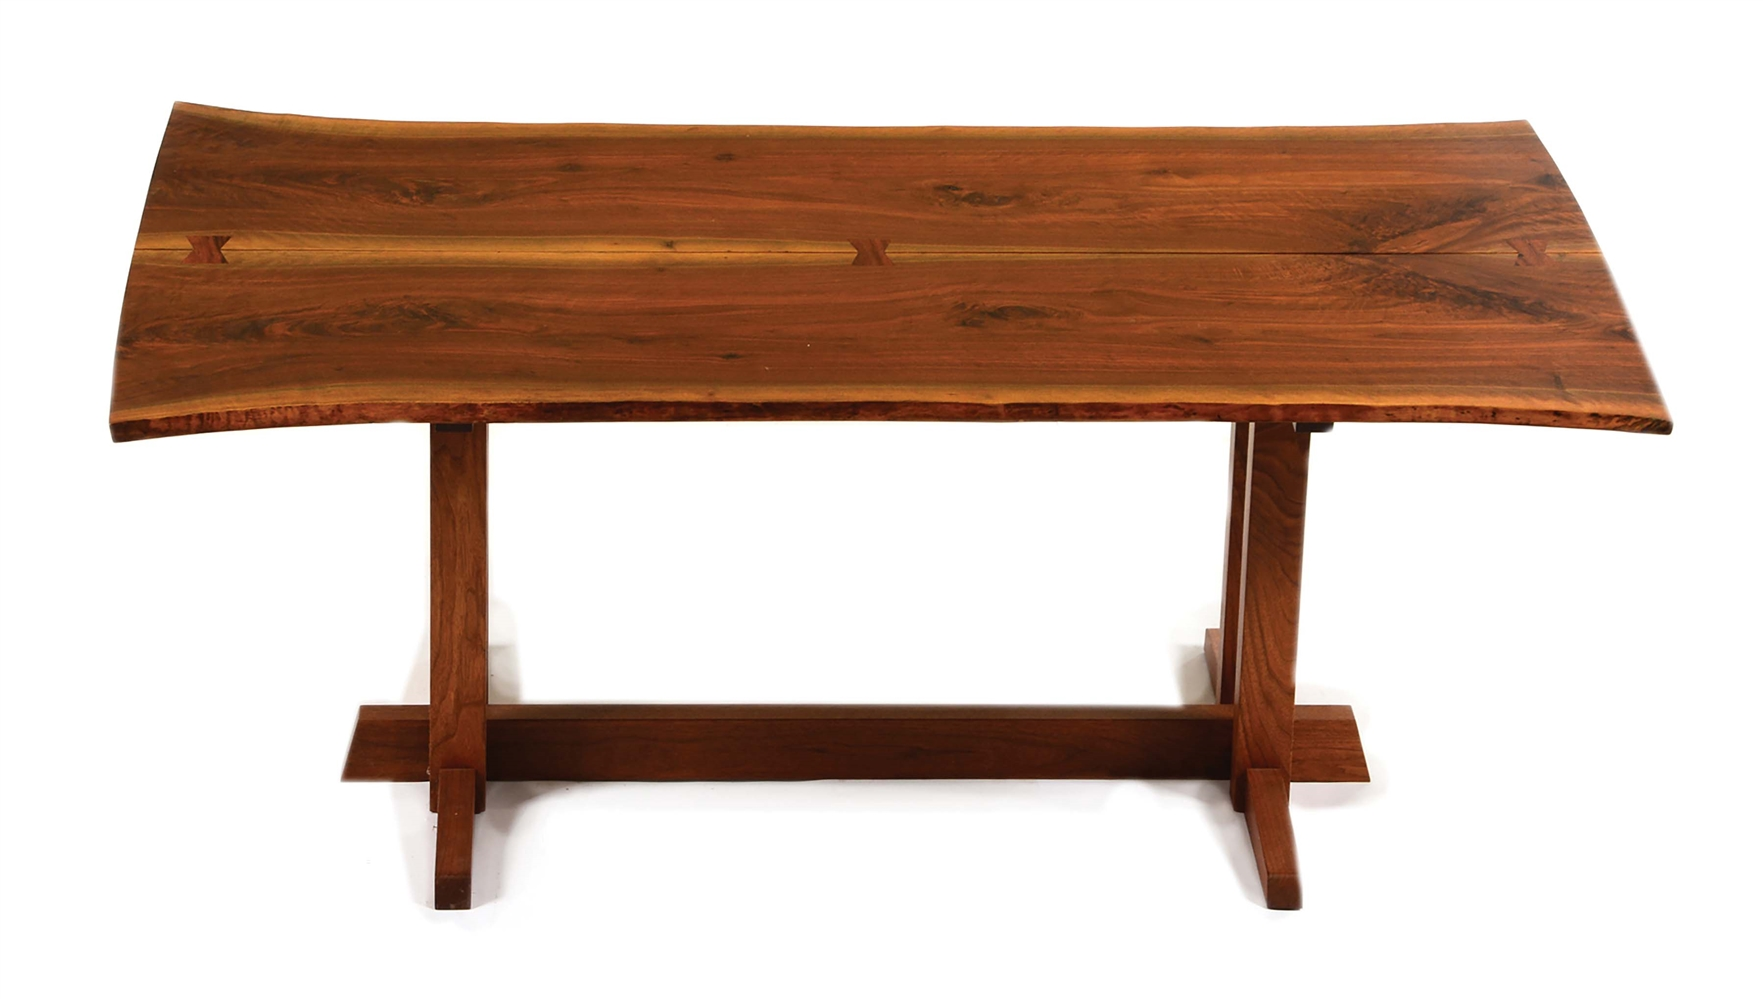 GEORGE NAKASHIMA FRENCHMANS COVE II DINING TABLE